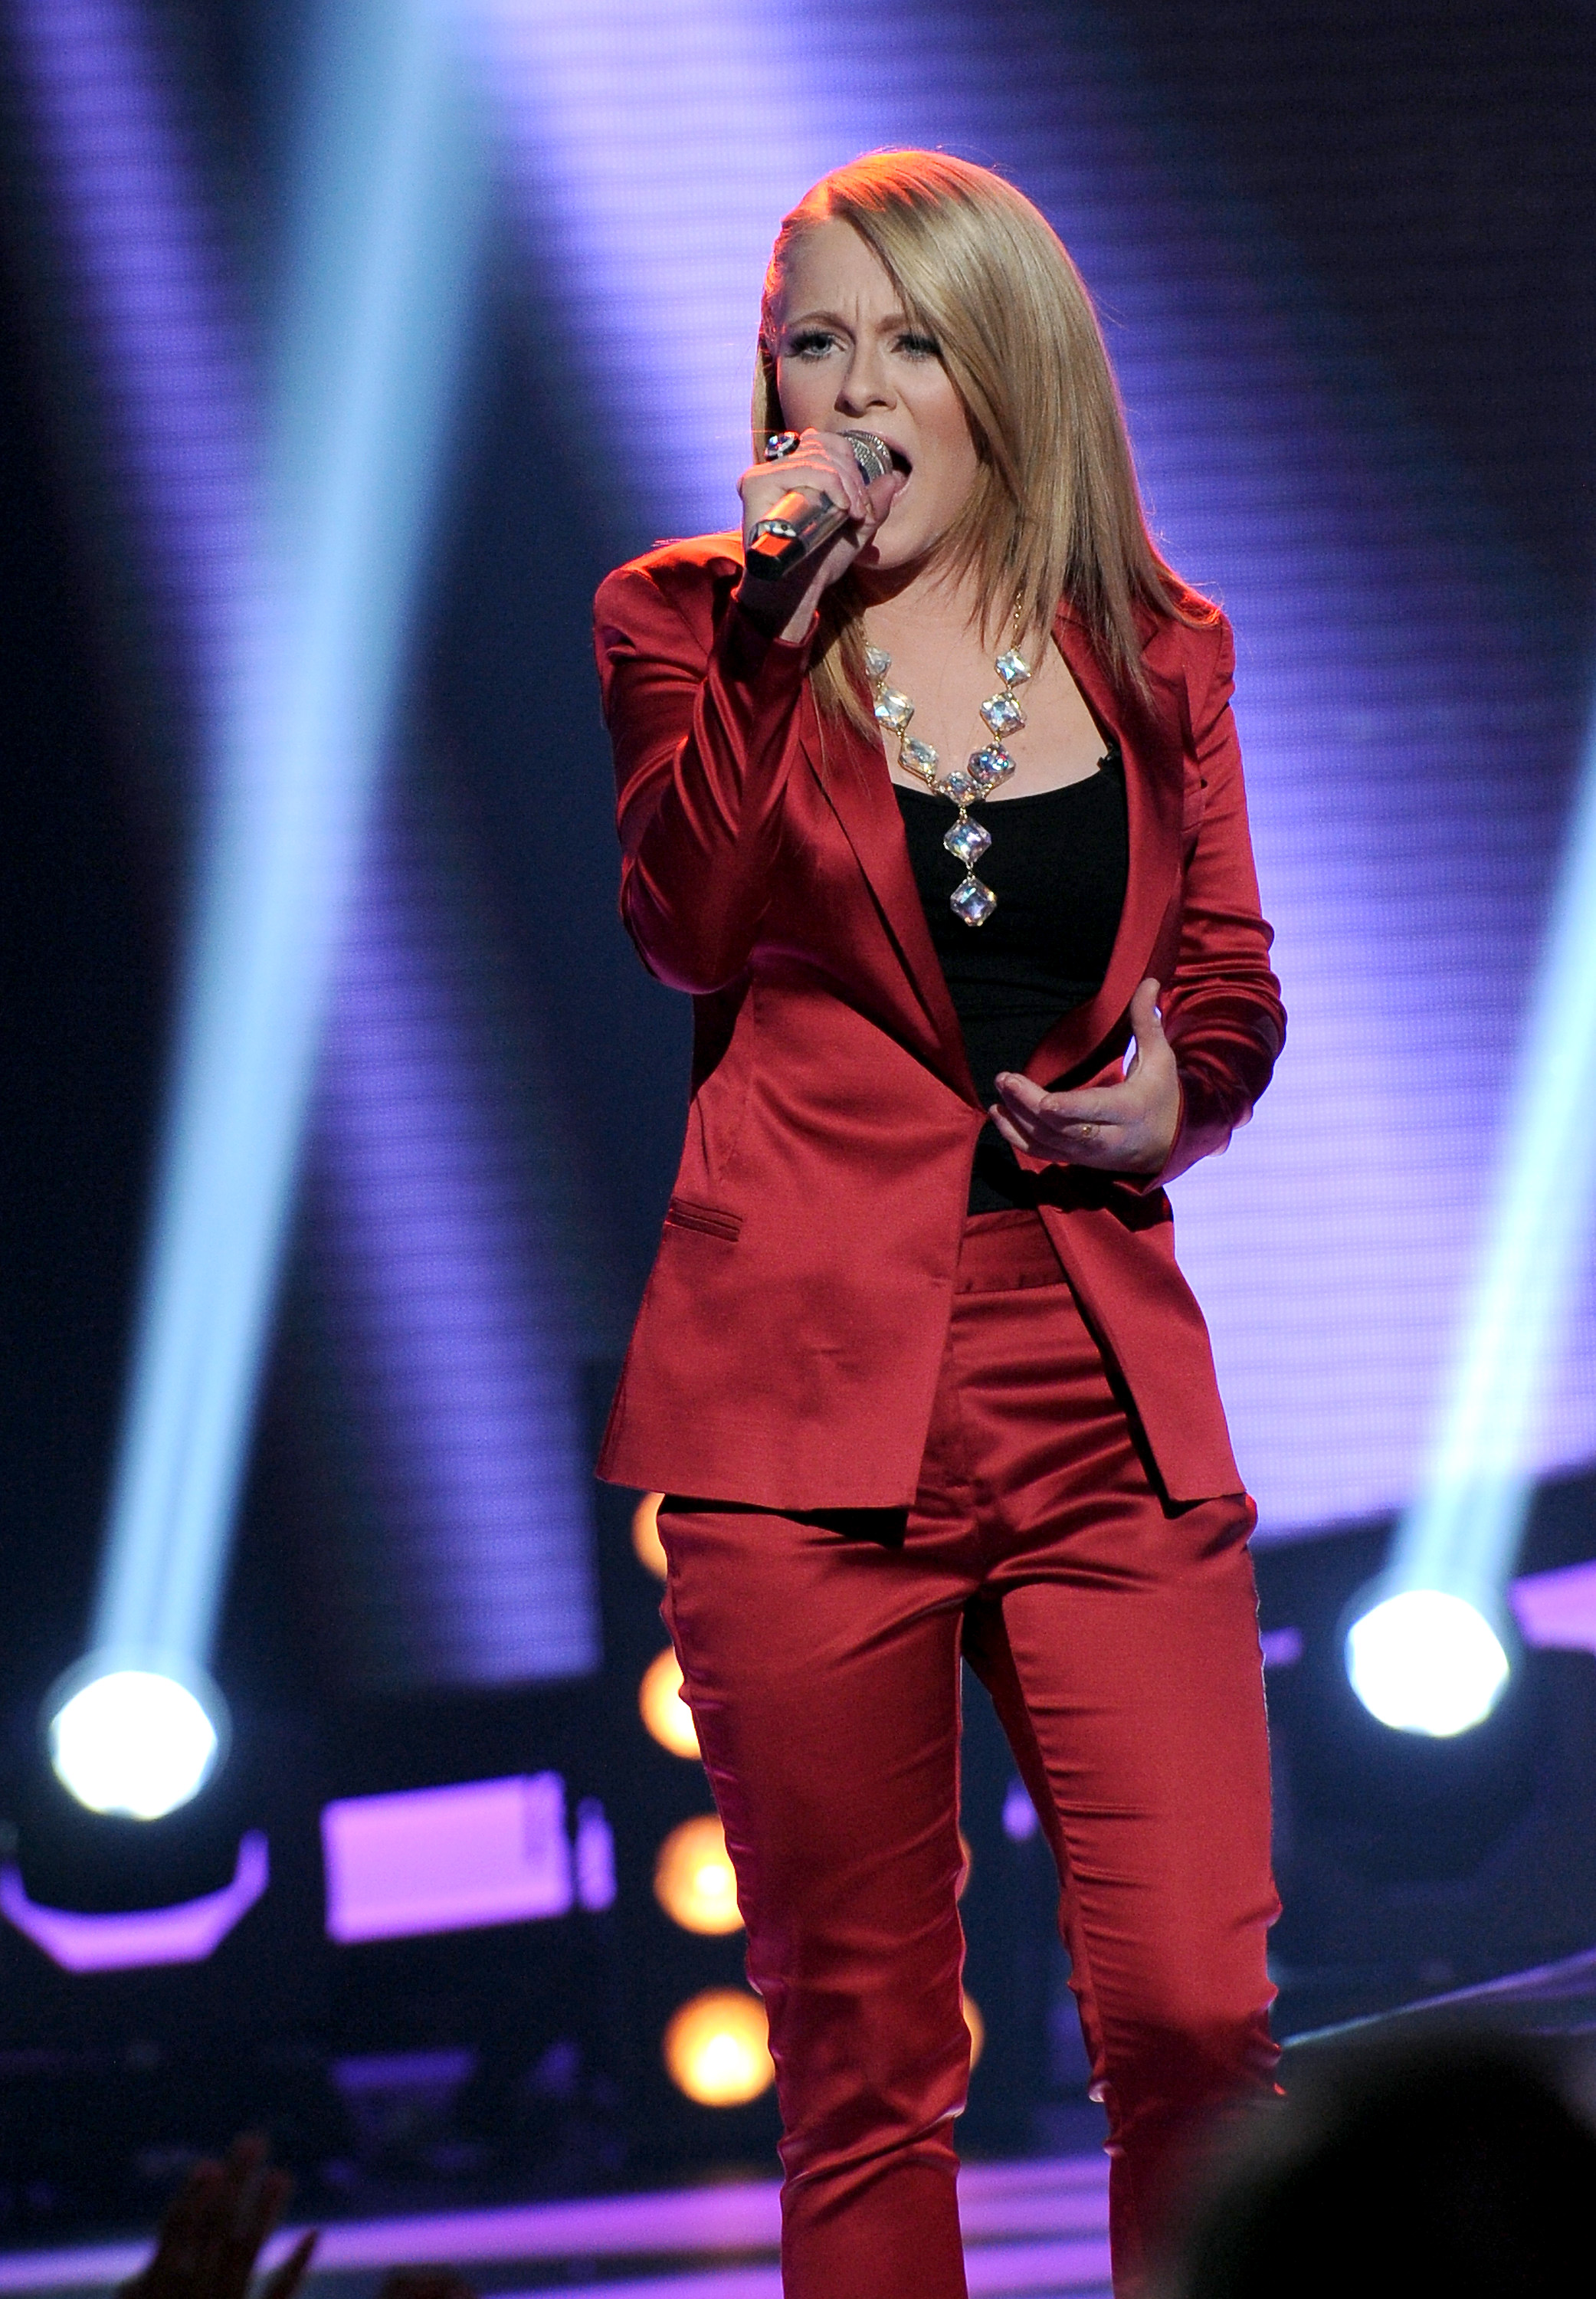 Hollie Cavanagh impressed the judges with her closing ballad.